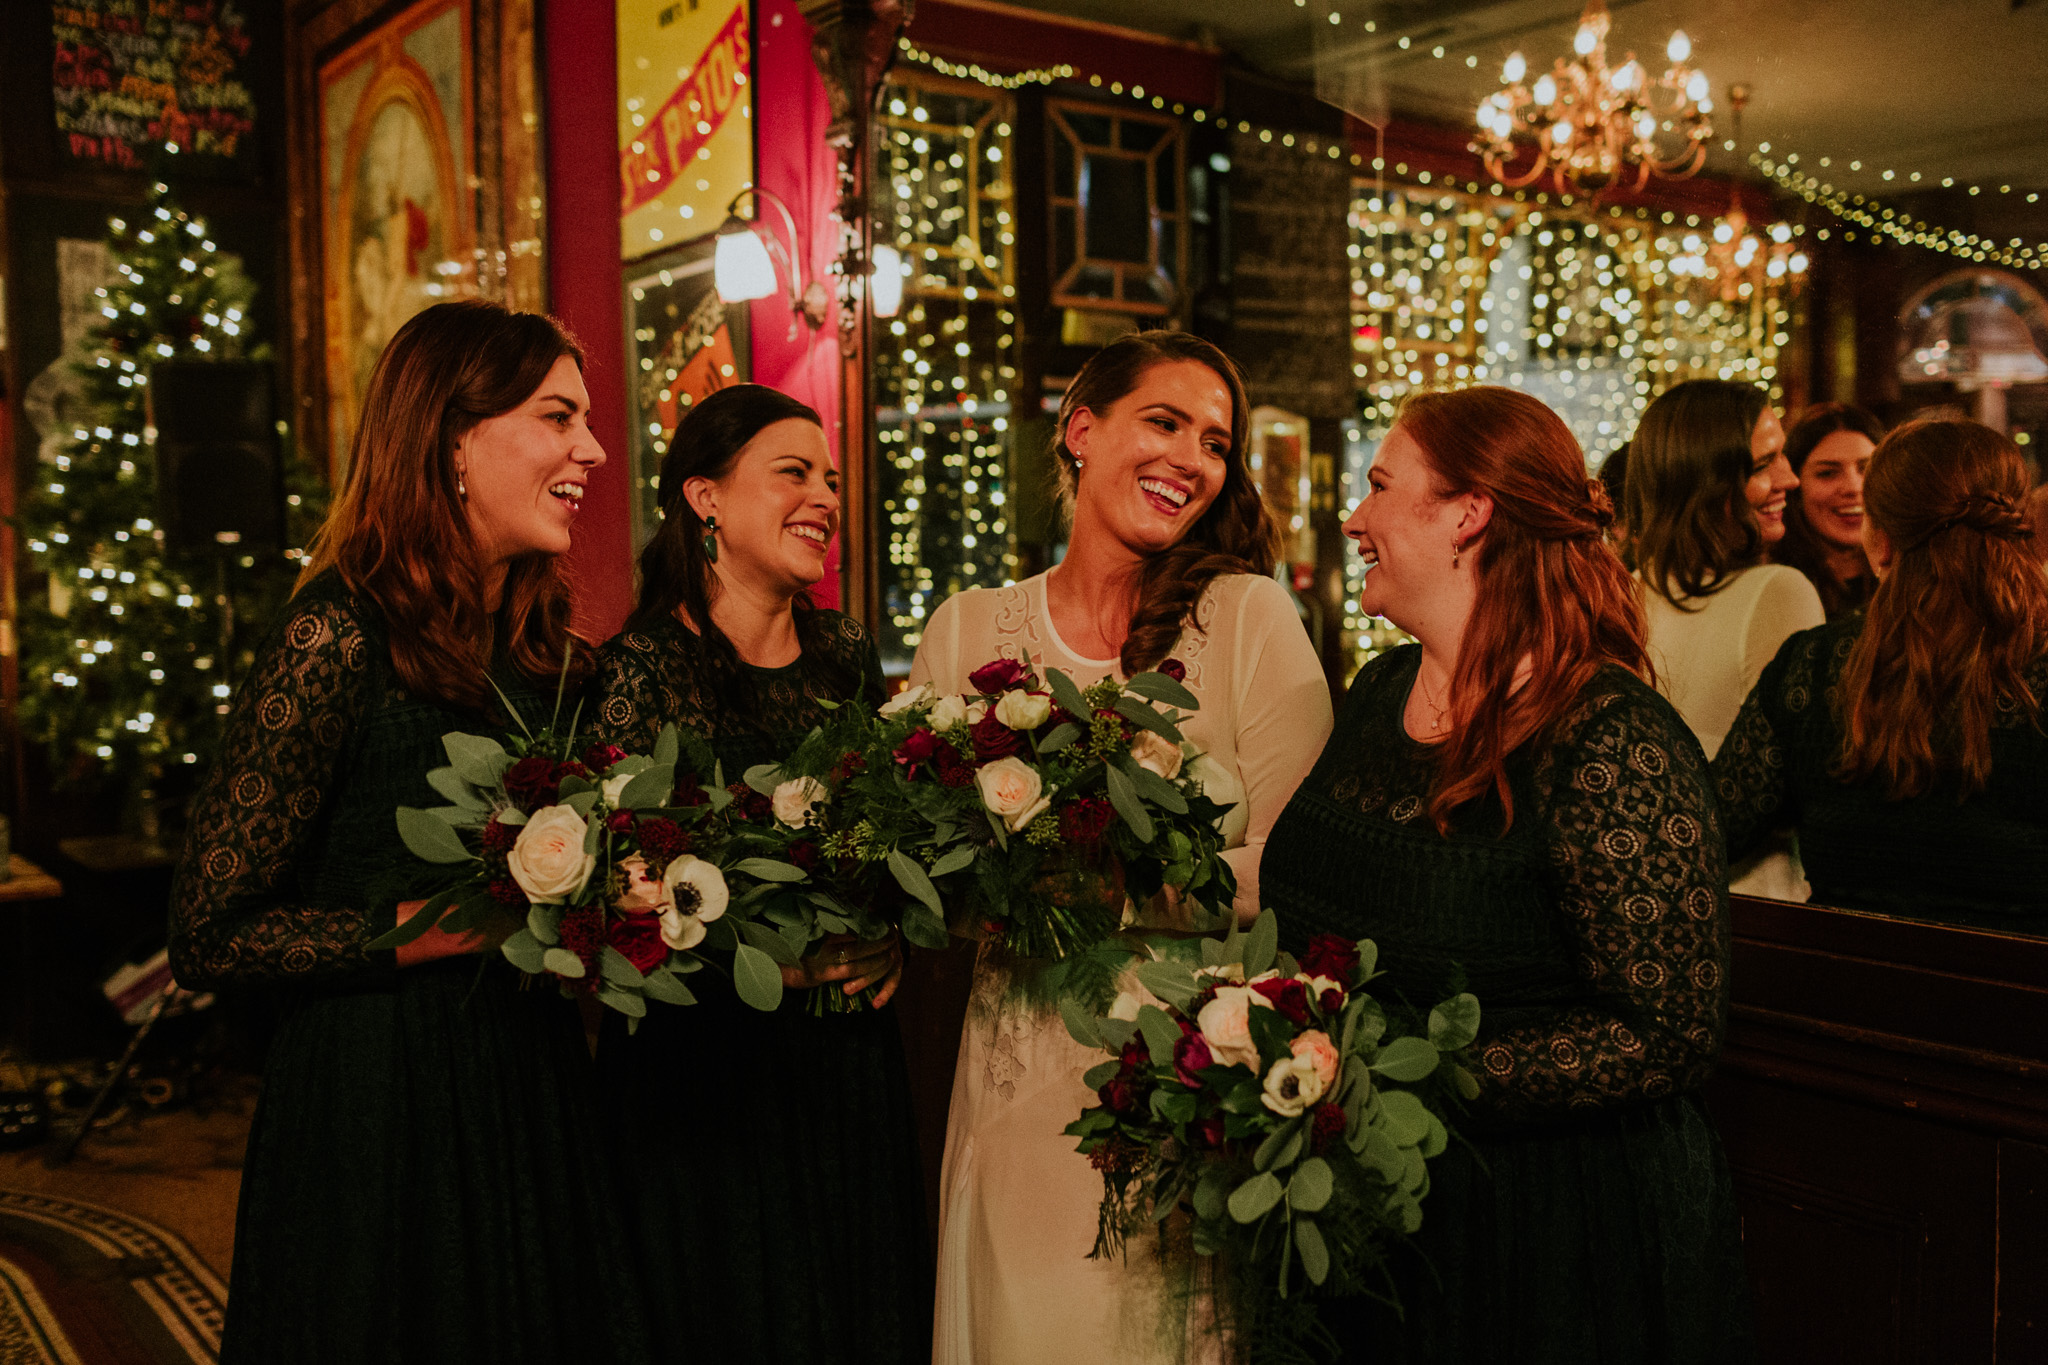 Bride with her bridesmaids at The Peasant, London in December wedding. Photo by Maja Tsolo